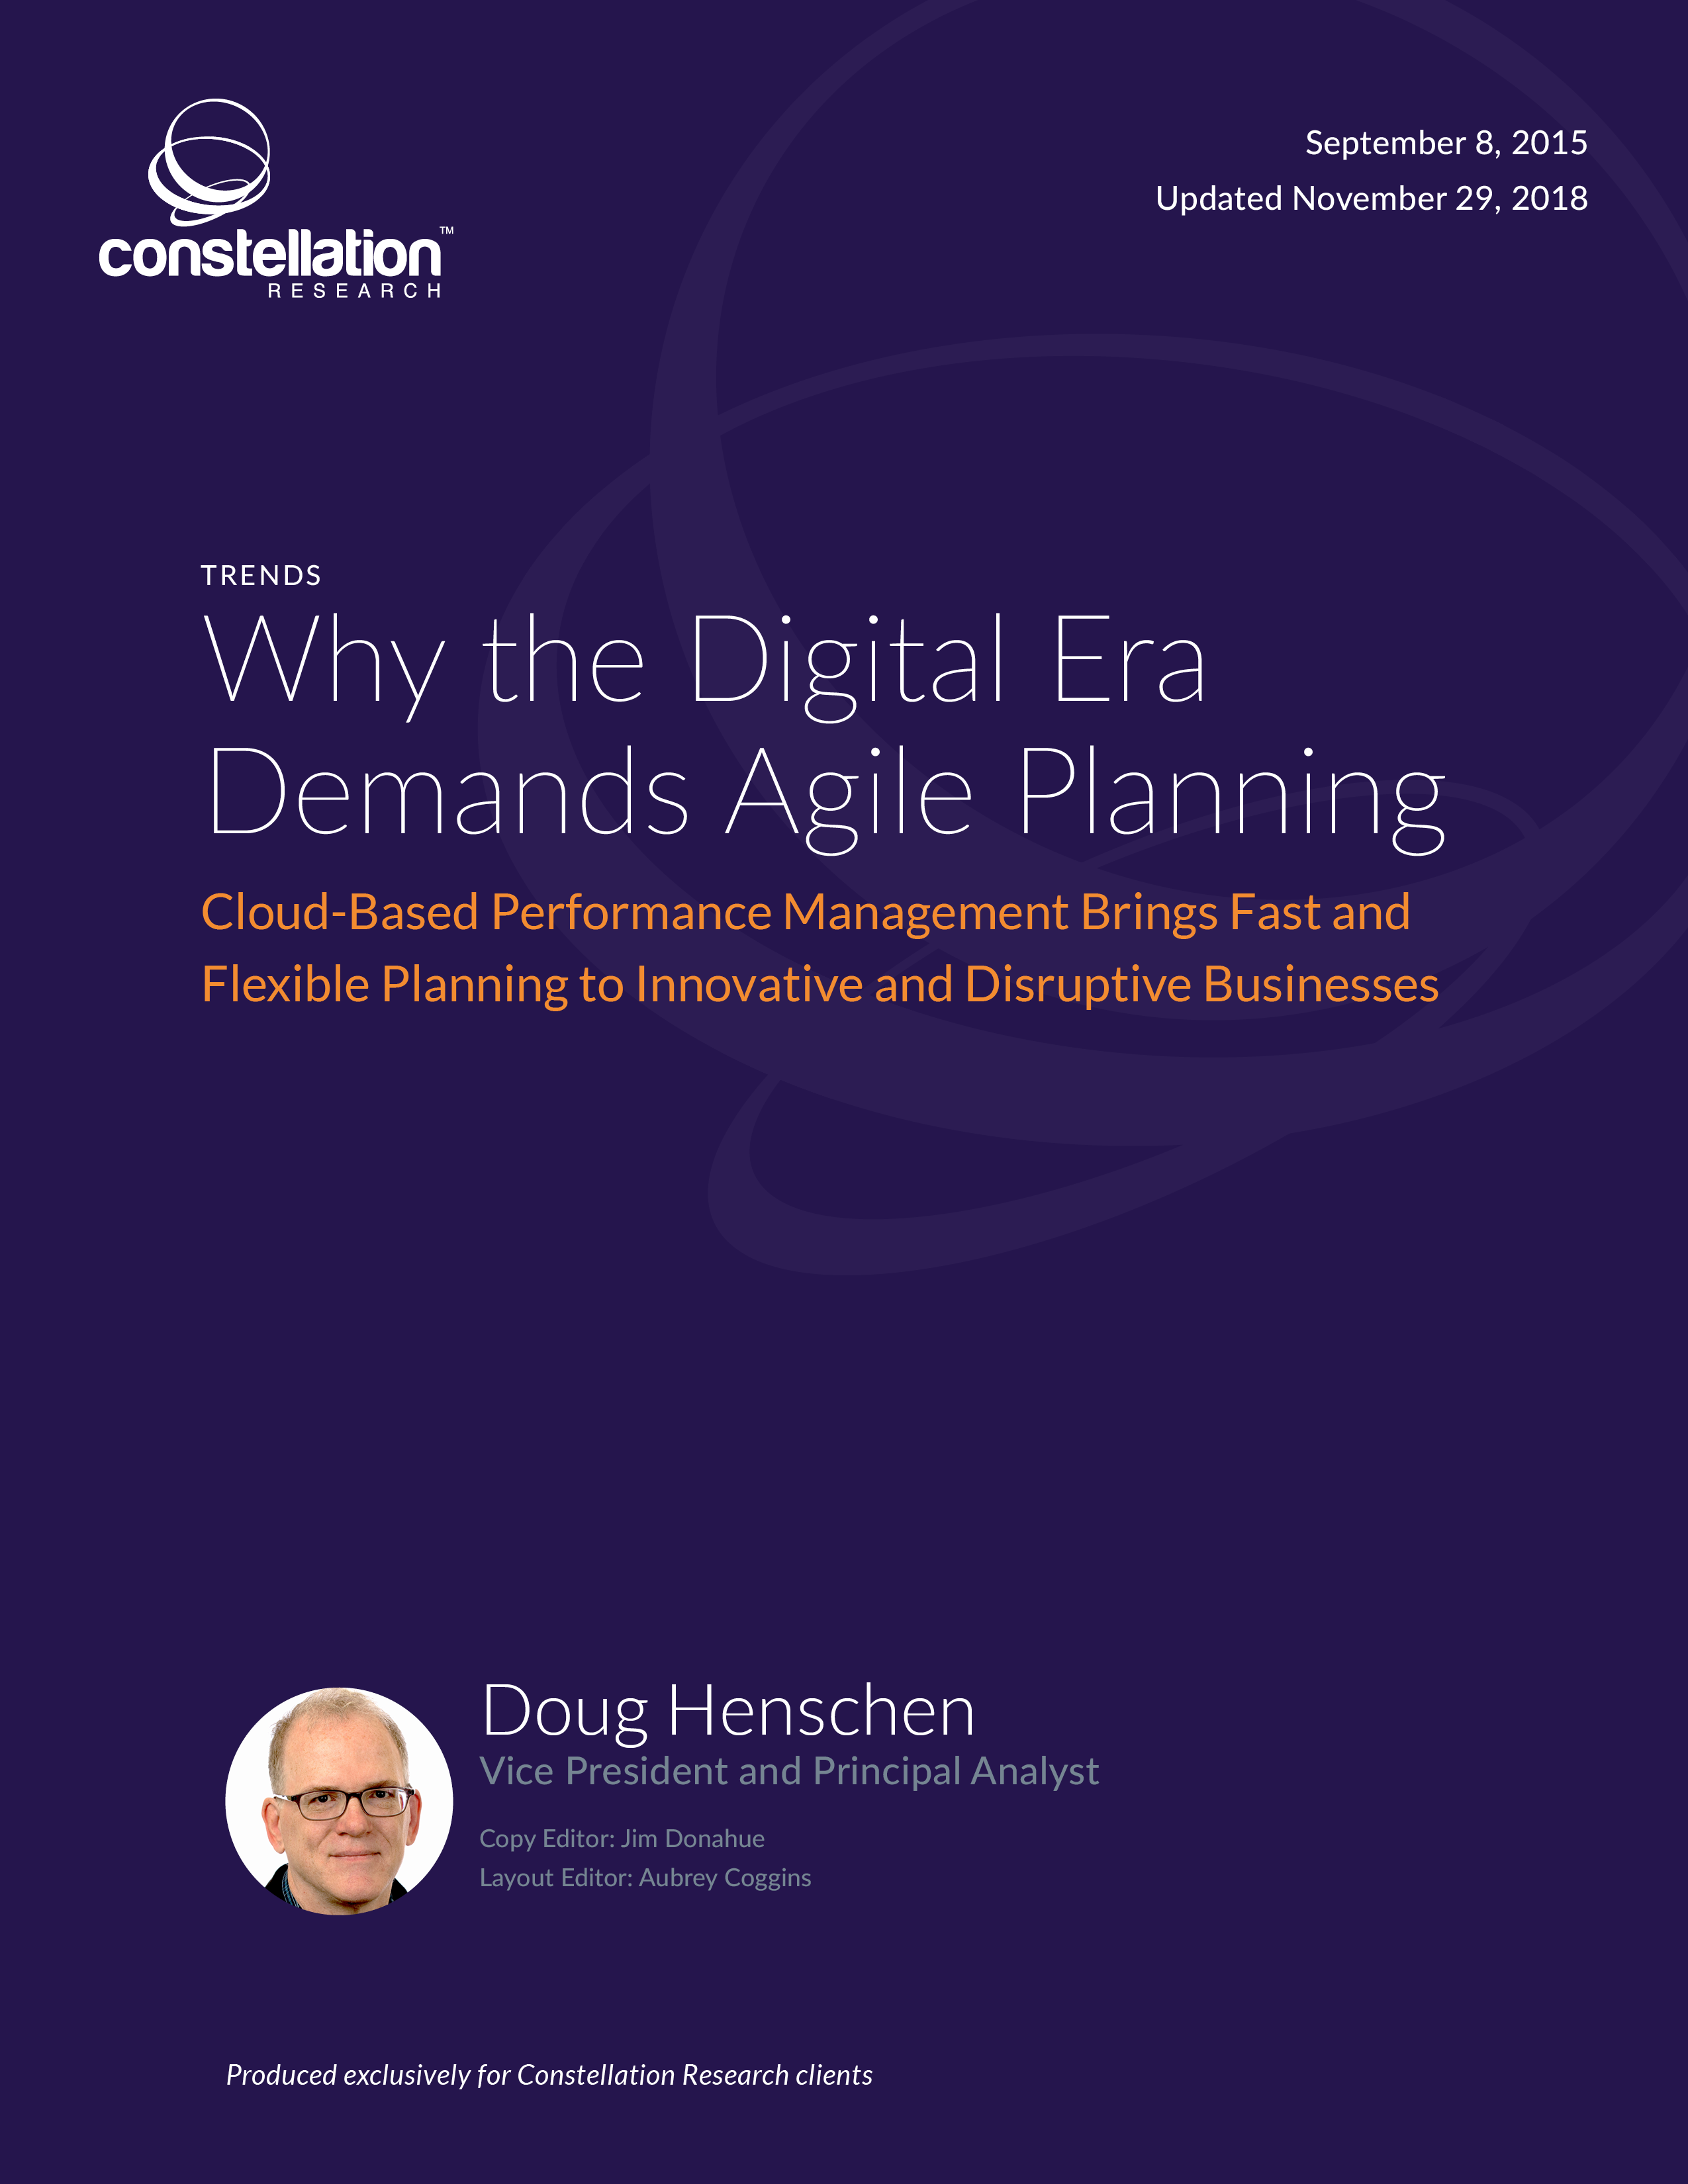 Why the Digital Era Demands Agile Planning